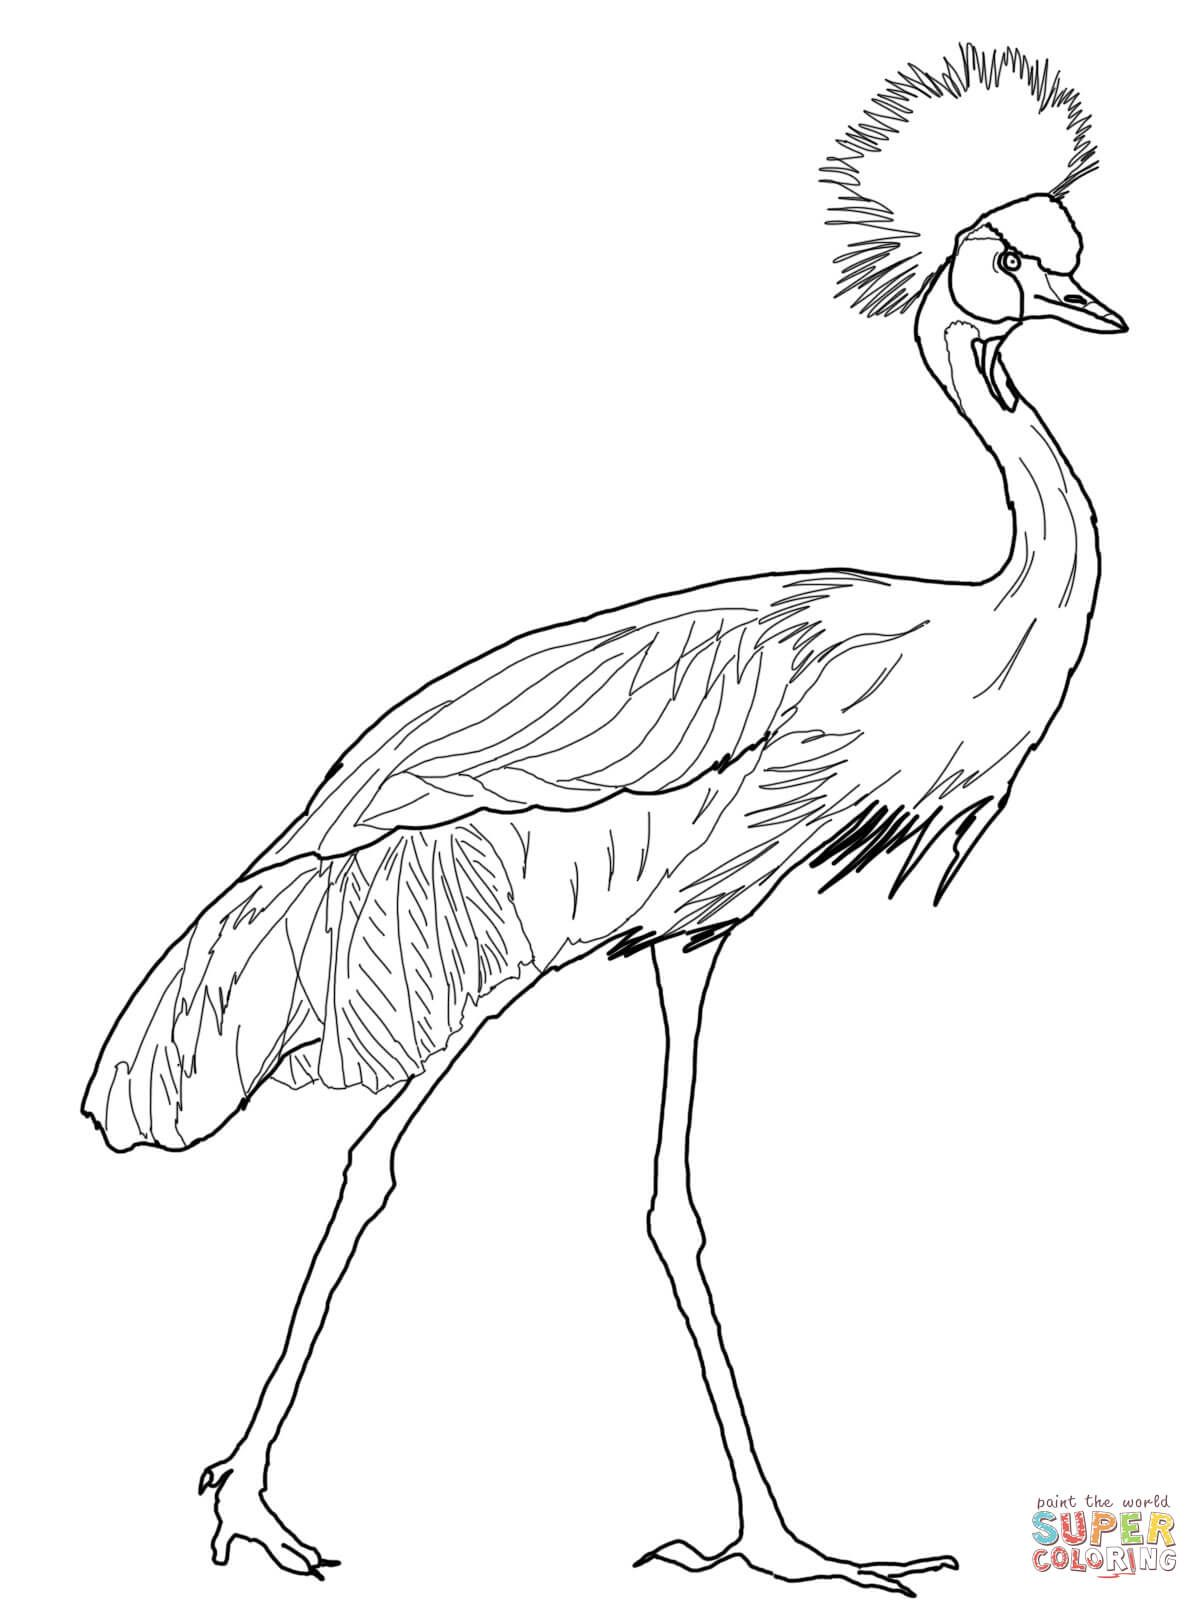 Black Crowned Crane Coloring Page Free Printable Coloring Pages